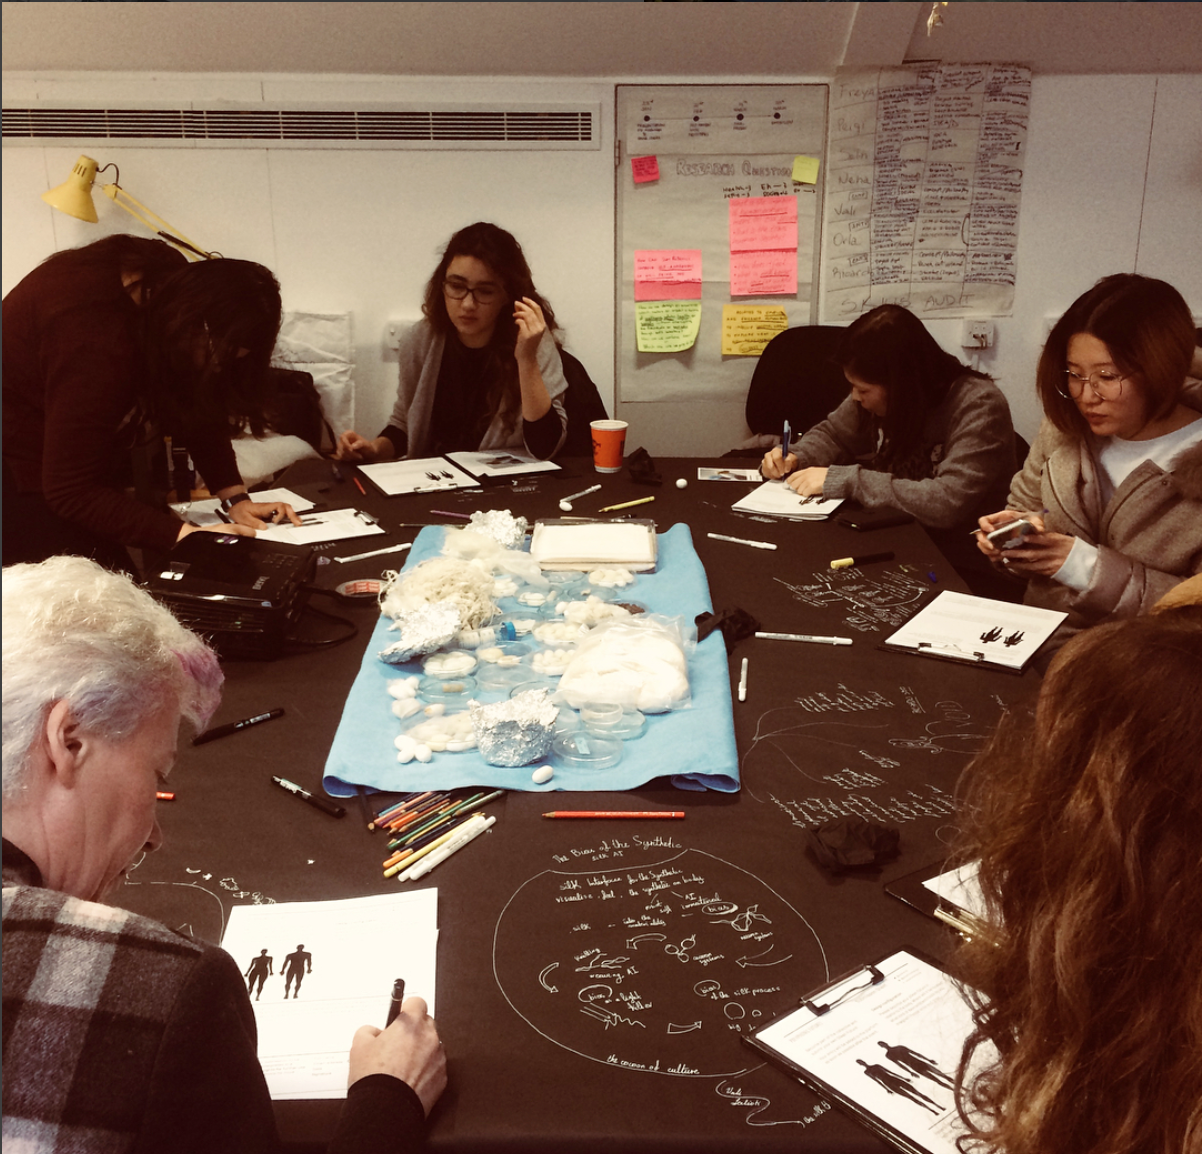 Impressions from the workshop day at the Royal College of Art.